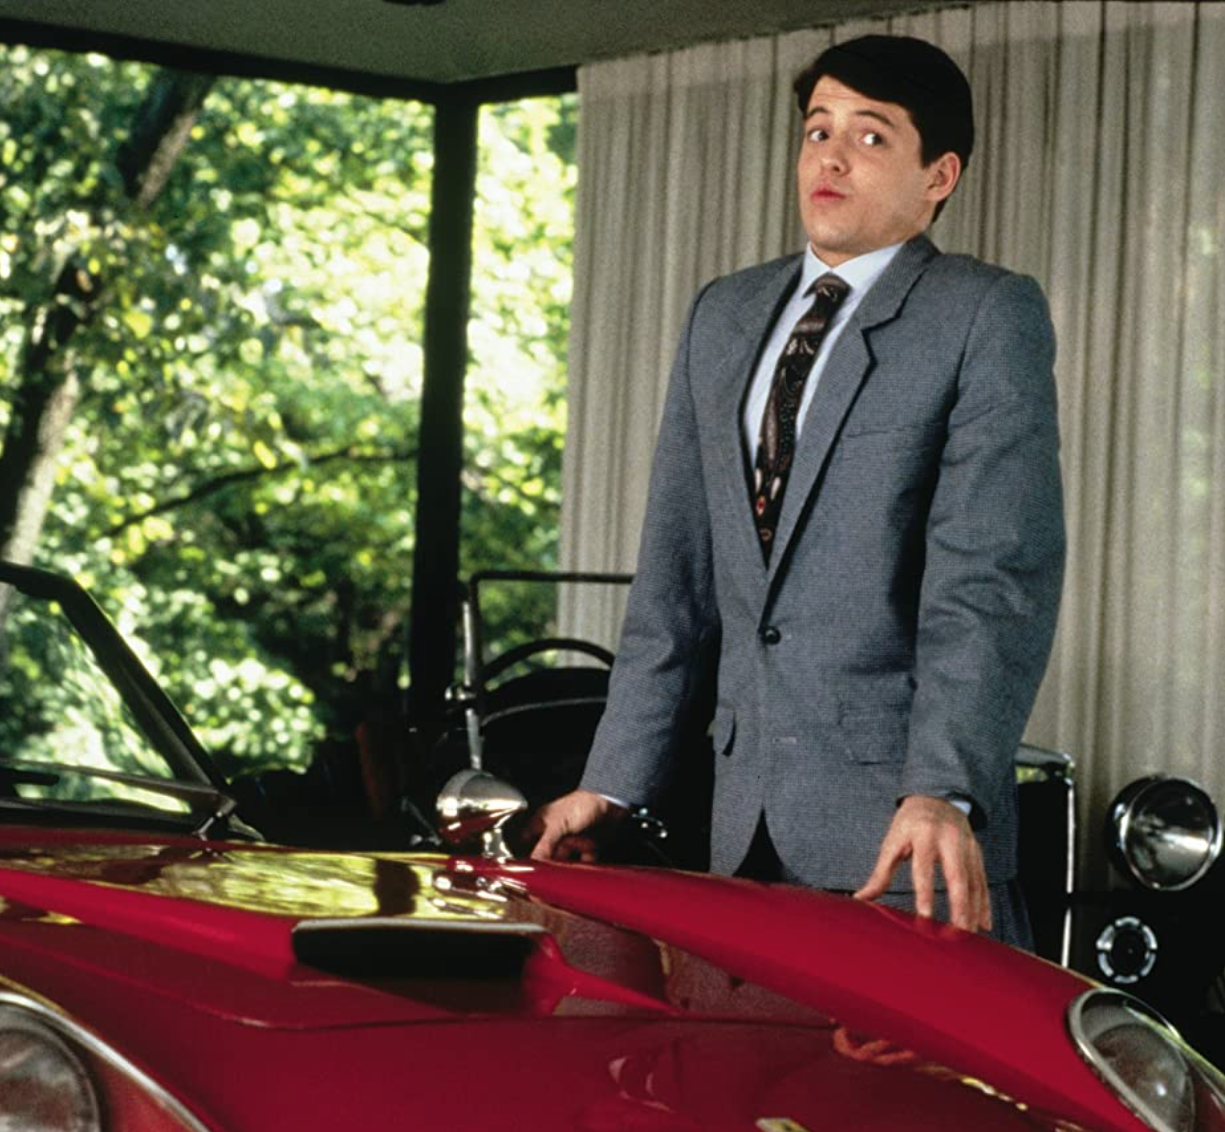 Screen Shot 2021 03 24 at 9.20.42 am e1616577685549 20 Things You Probably Didn't Know About Matthew Broderick